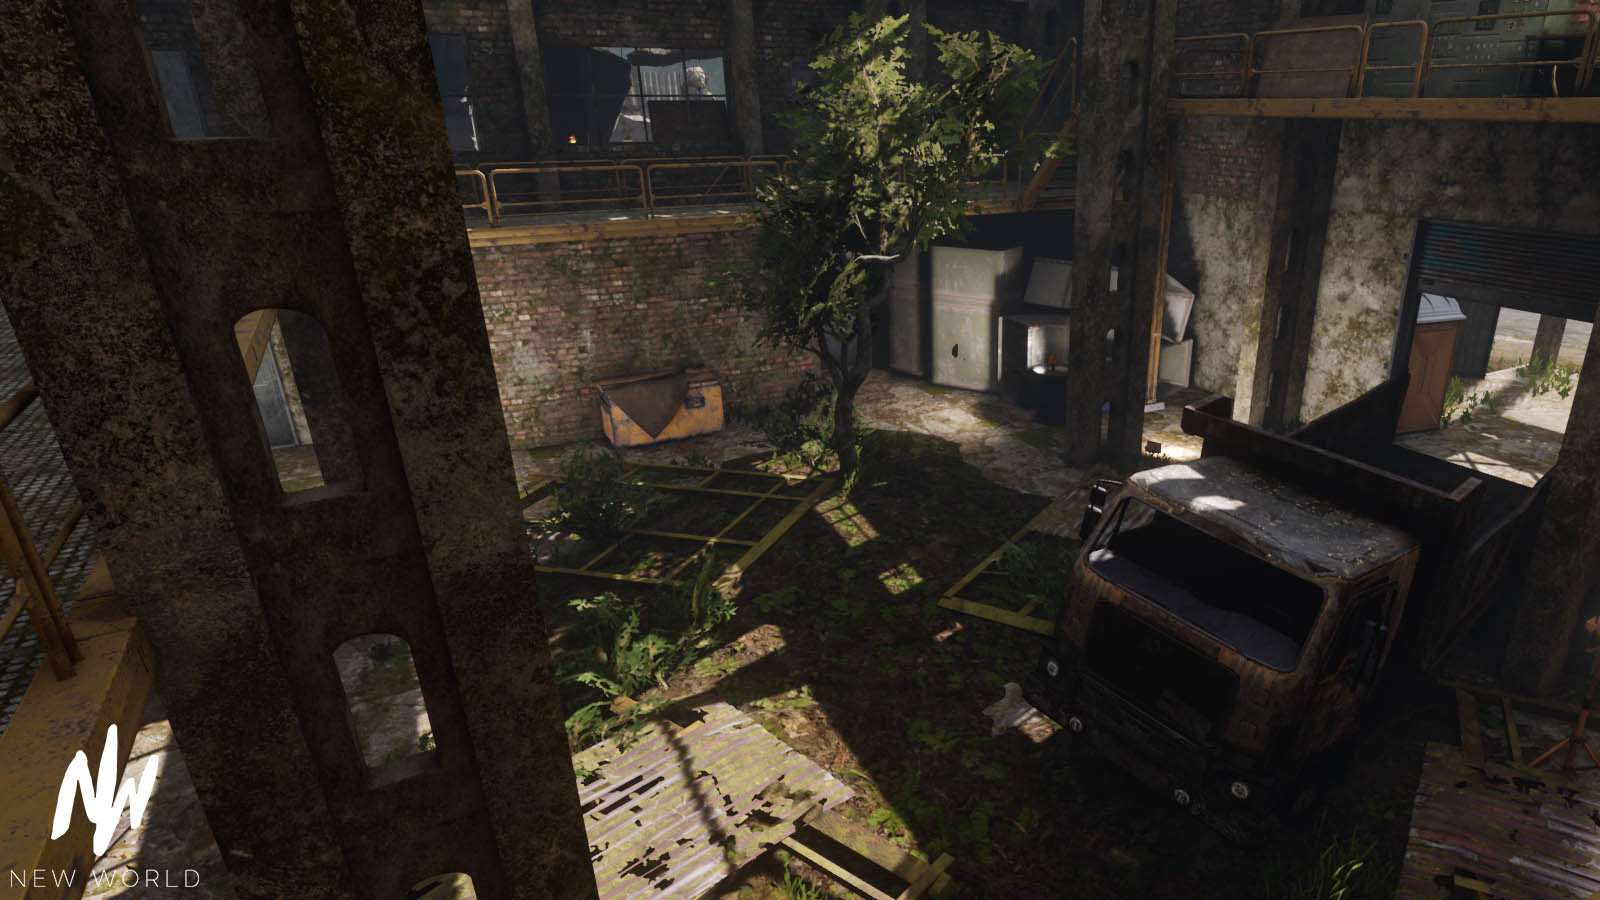 Insurgency: Sandstorm's new map, Power Plant, is included in the free week.